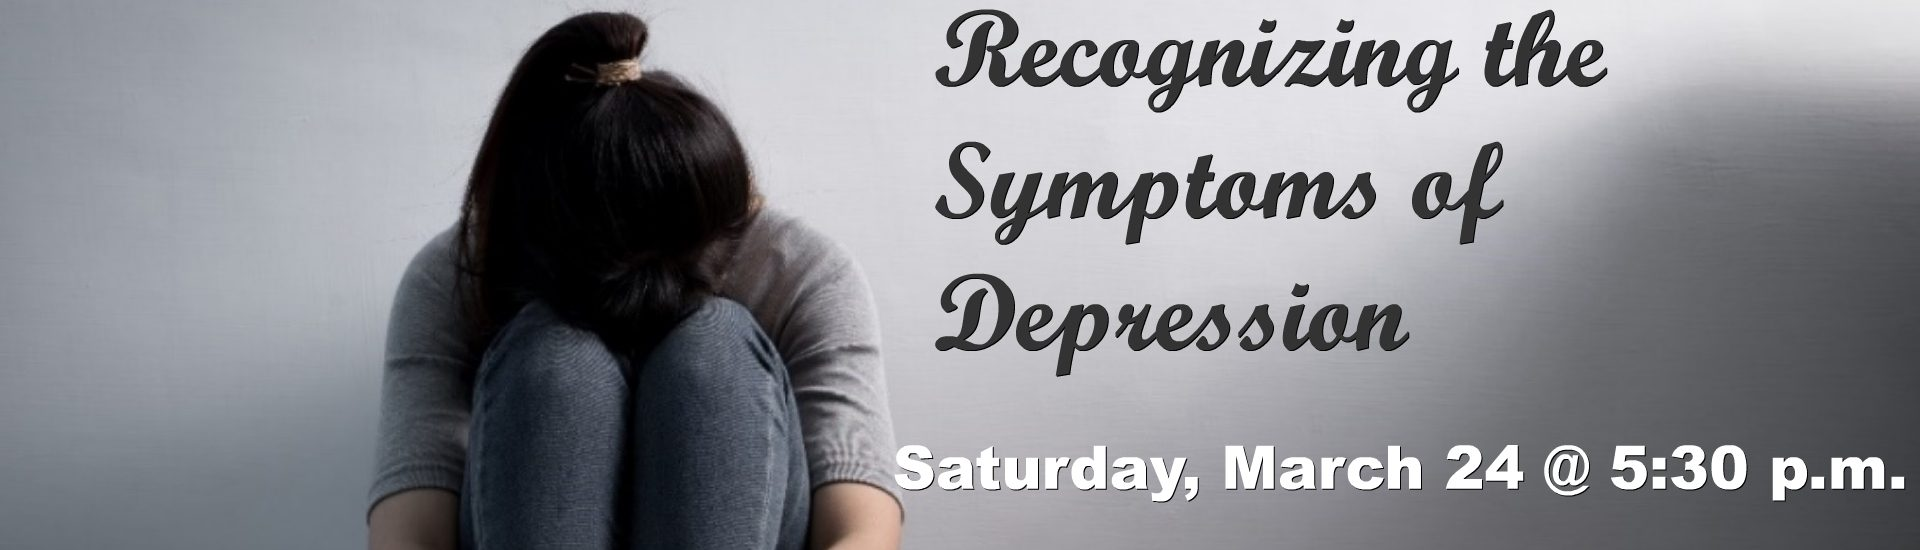 AYS: Recognizing the Symptons of Depression